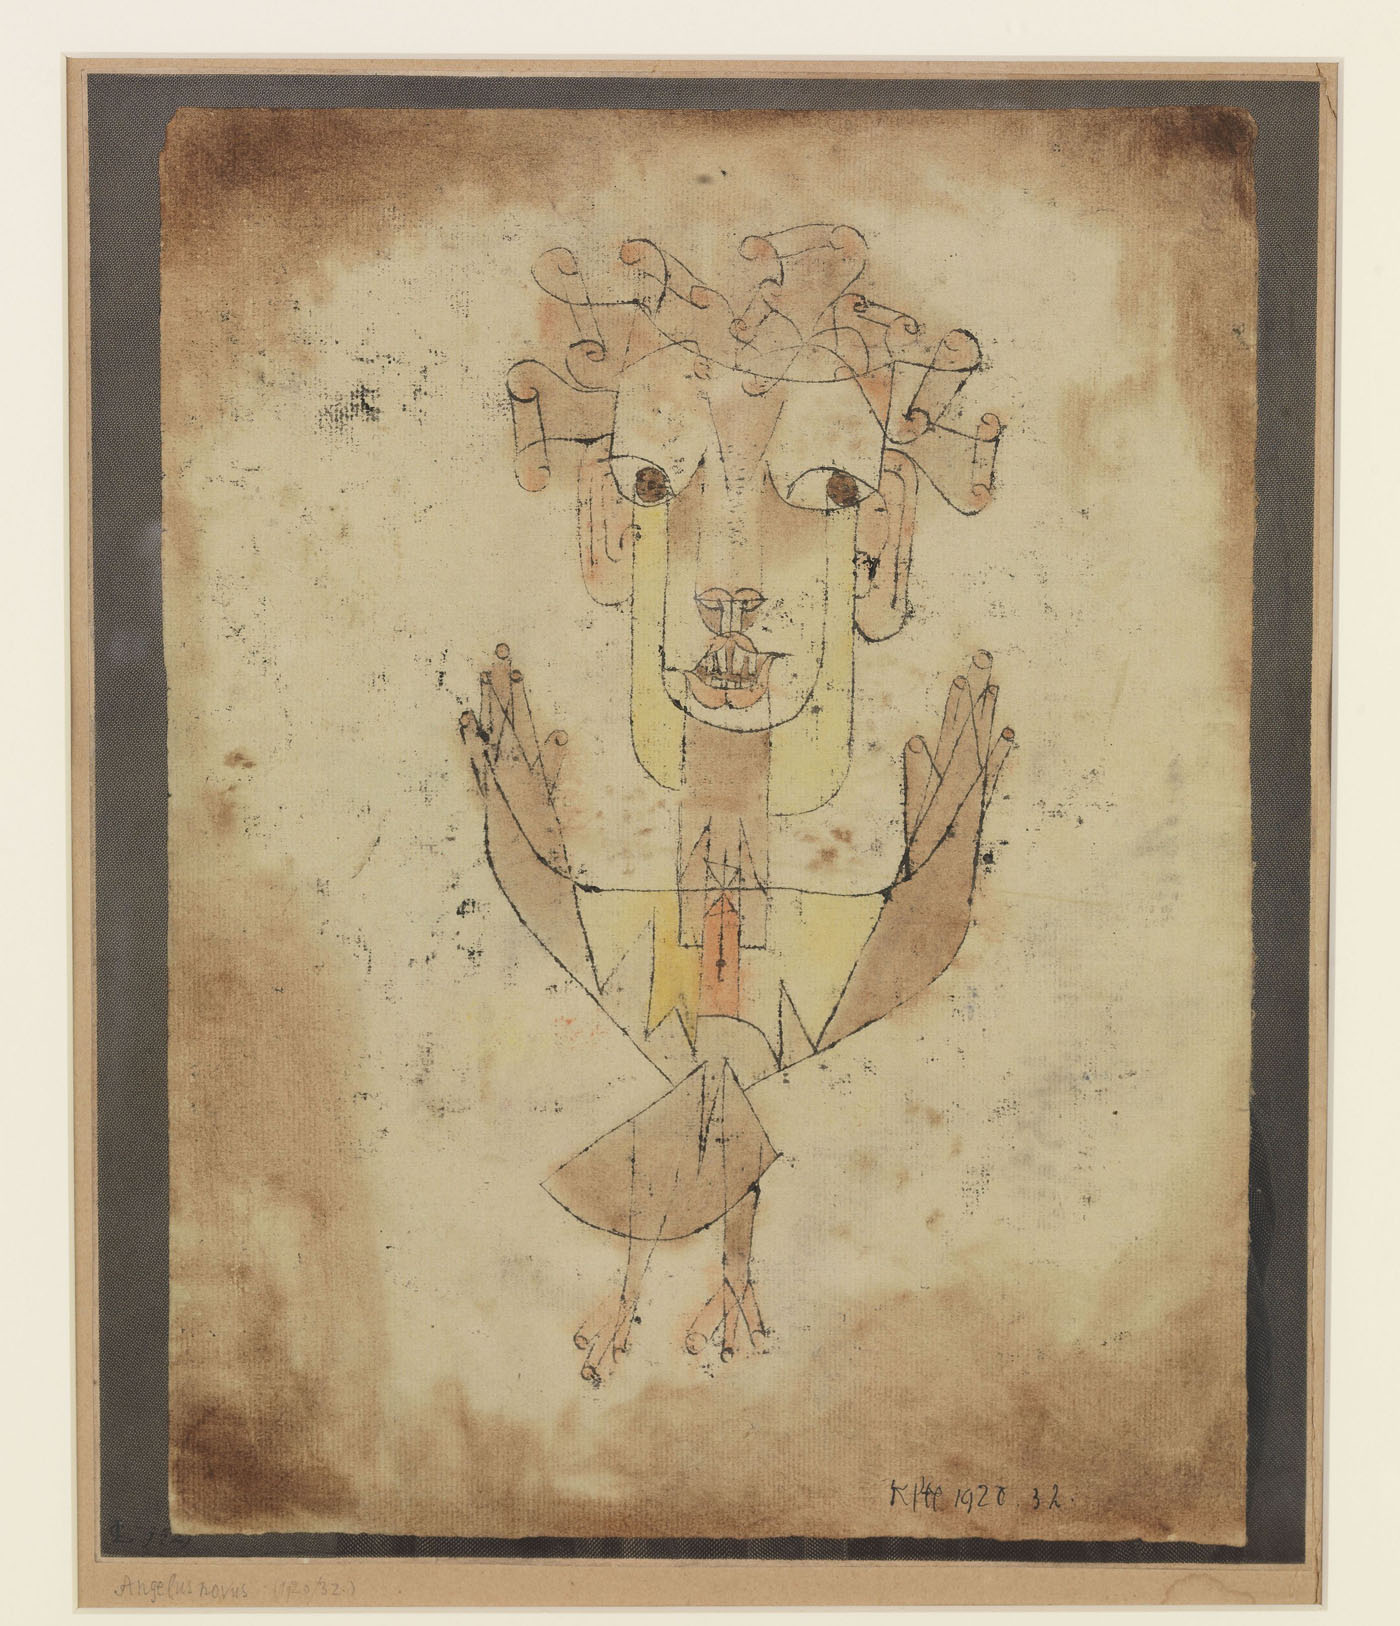 """Paul Klee, """"Angelus novus"""" (1920), oil and watercolor on paper on card (courtesy the Israel Museum, Jerusalem)"""